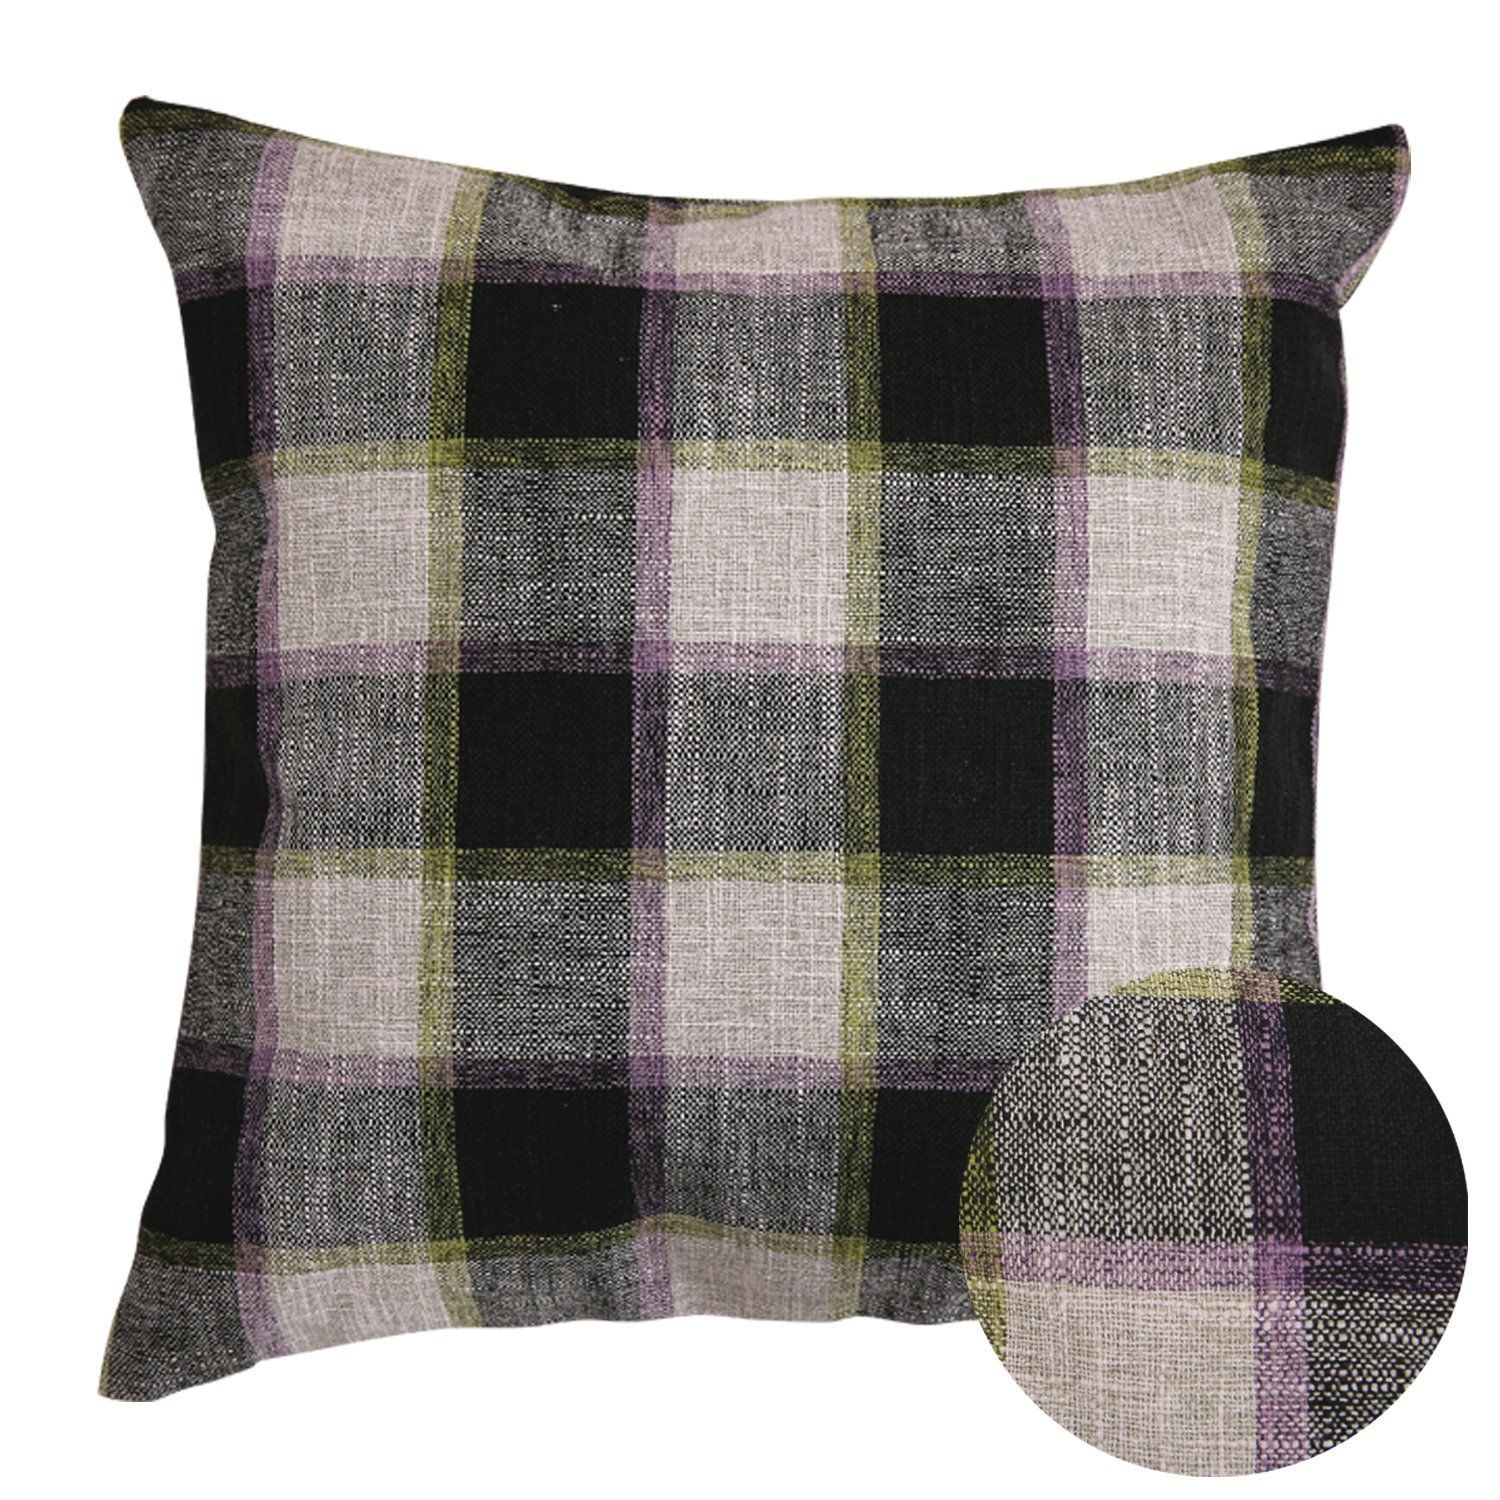 Pin on Cushion Covers